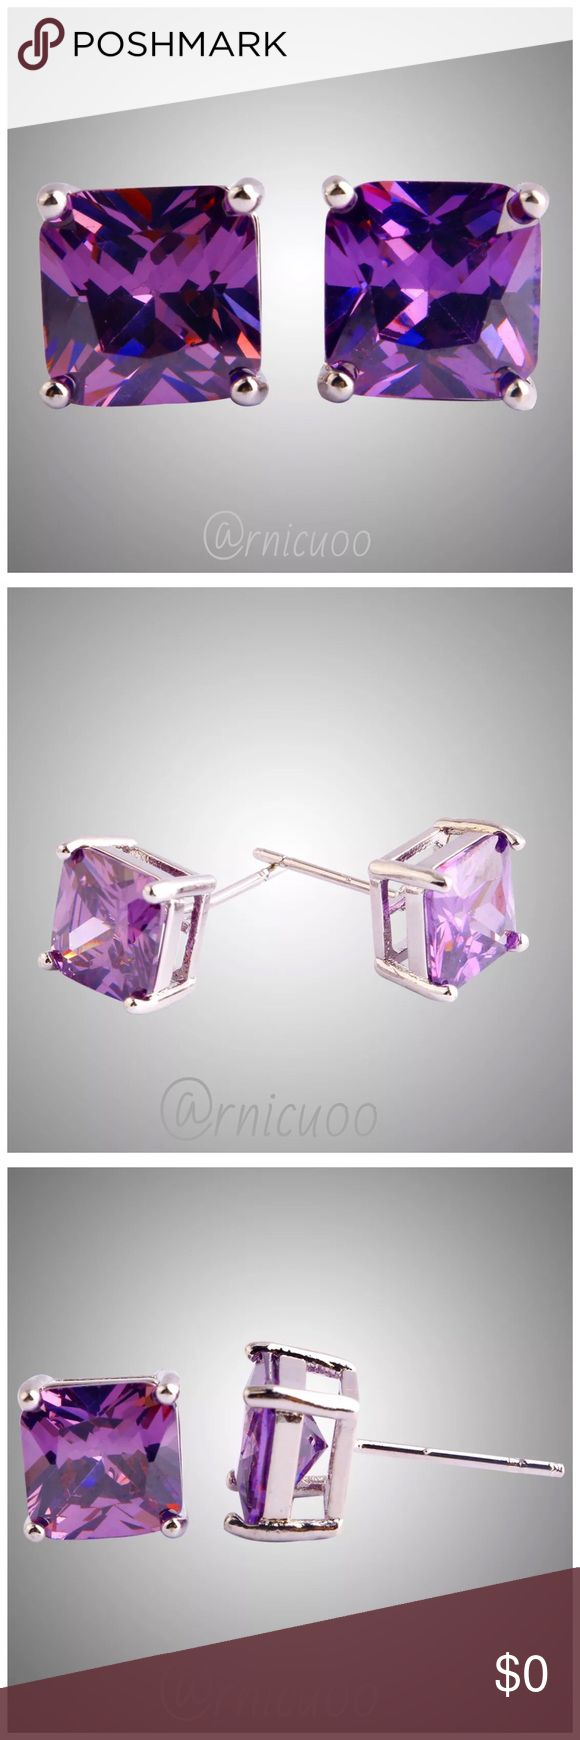 "925 Square 8mm Amethyst Stone Stud Earrings Beautiful & Shiny, Sterling Silver 8mm Square Amethyst Stud Earrings! Buy for yourself or will make a perfect gift!!  • .925 Sterling Silver, post back • 8mm Amethyst Stone; 5 Carat Stone  ➖Prices Firm, Bundle for 20% Discount ➖""Trade"" & Lowball Offers will be ignored ➖Sales are Final, Please read Description & Ask Any Questions! Boutique Jewelry Earrings"